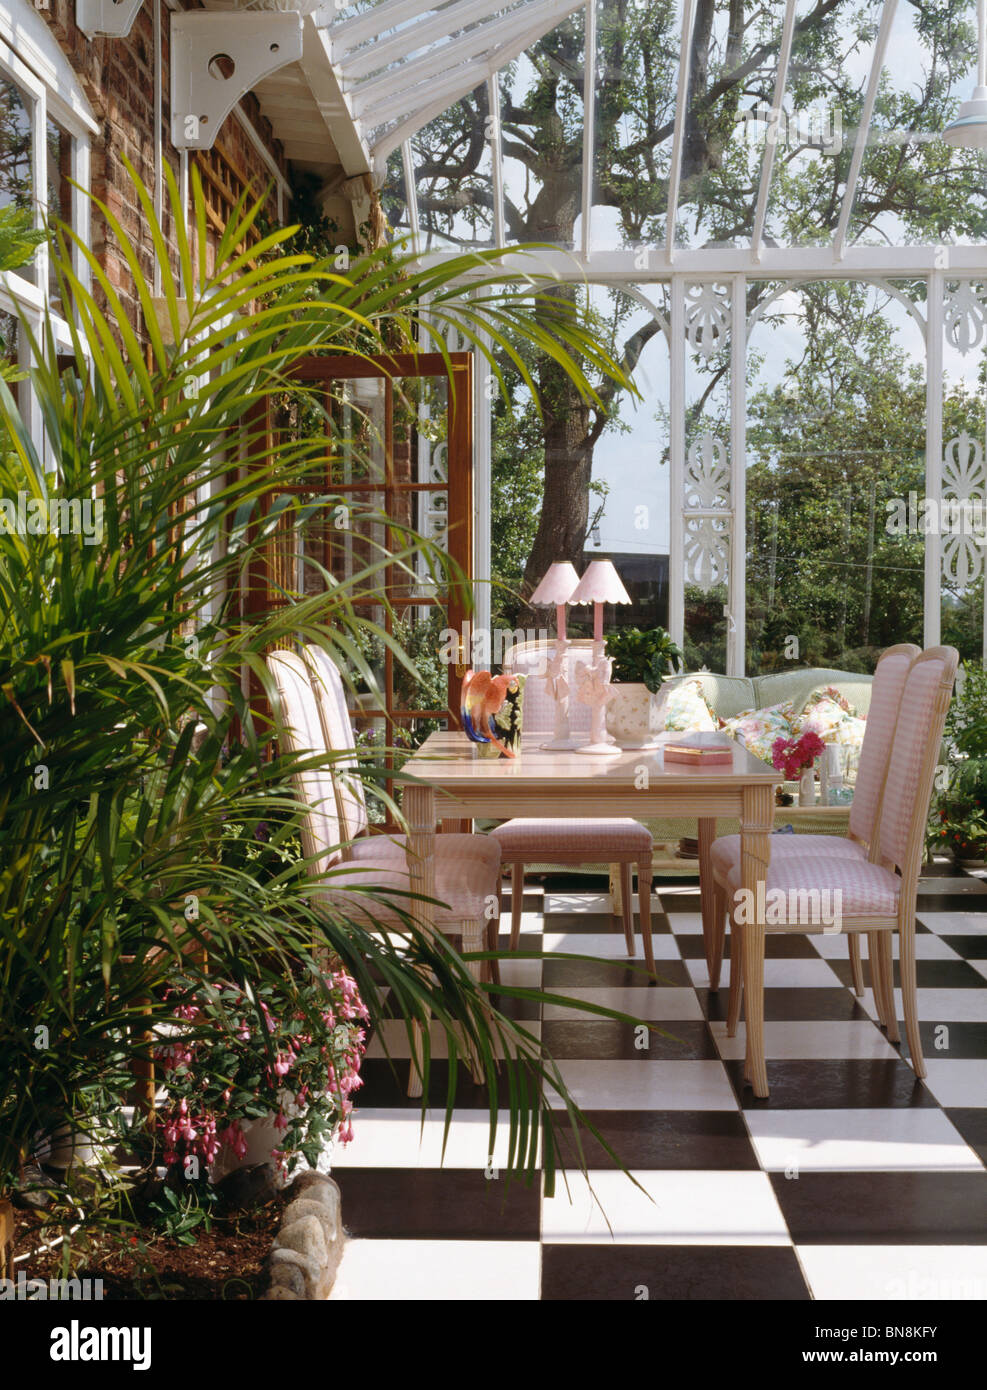 Black White Vinyl Flooring In Conservatory Dining Room With Tall Houseplants And Pink Upholstered Chairs